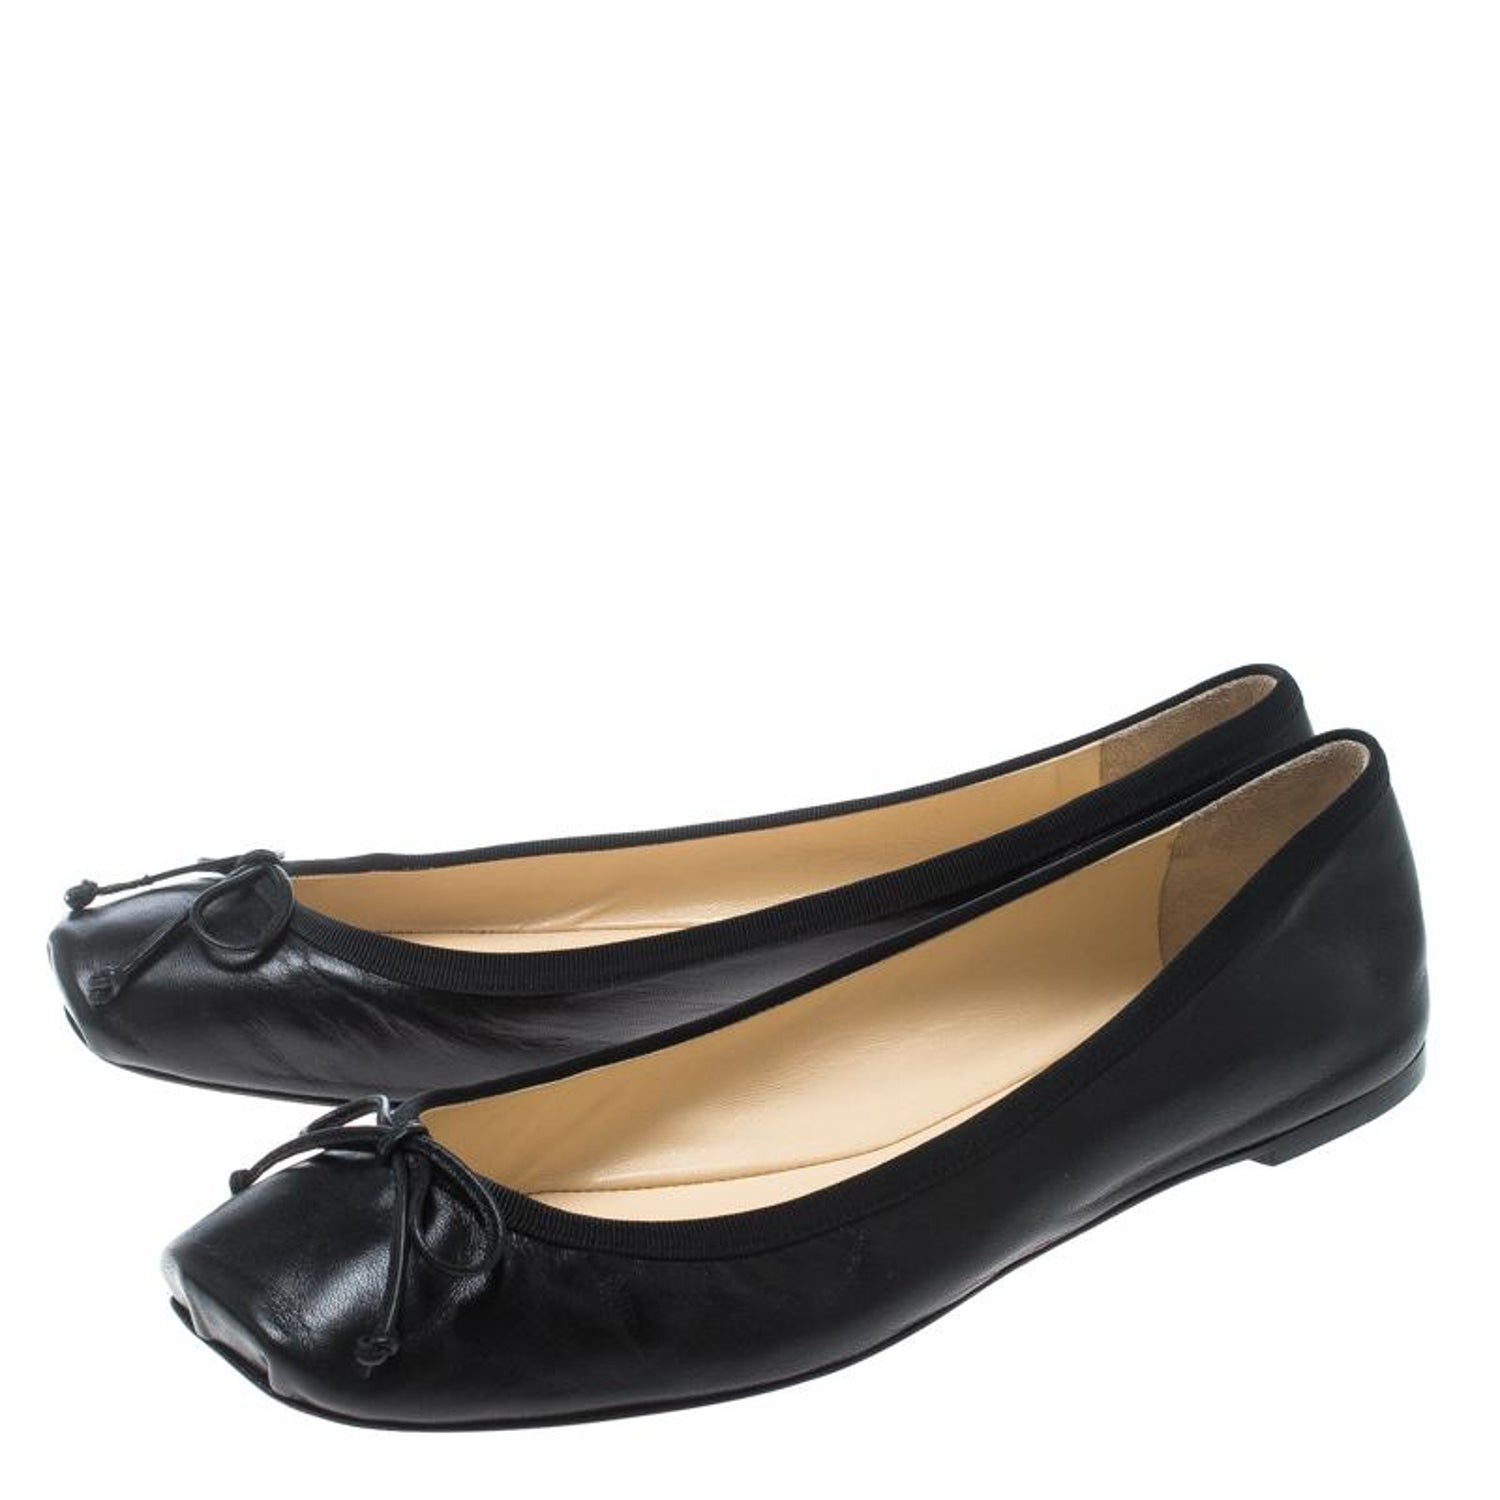 4afe9936d3c Christian Louboutin Black Leather Rosella Square Toe Ballet Flats Size 40  at 1stdibs